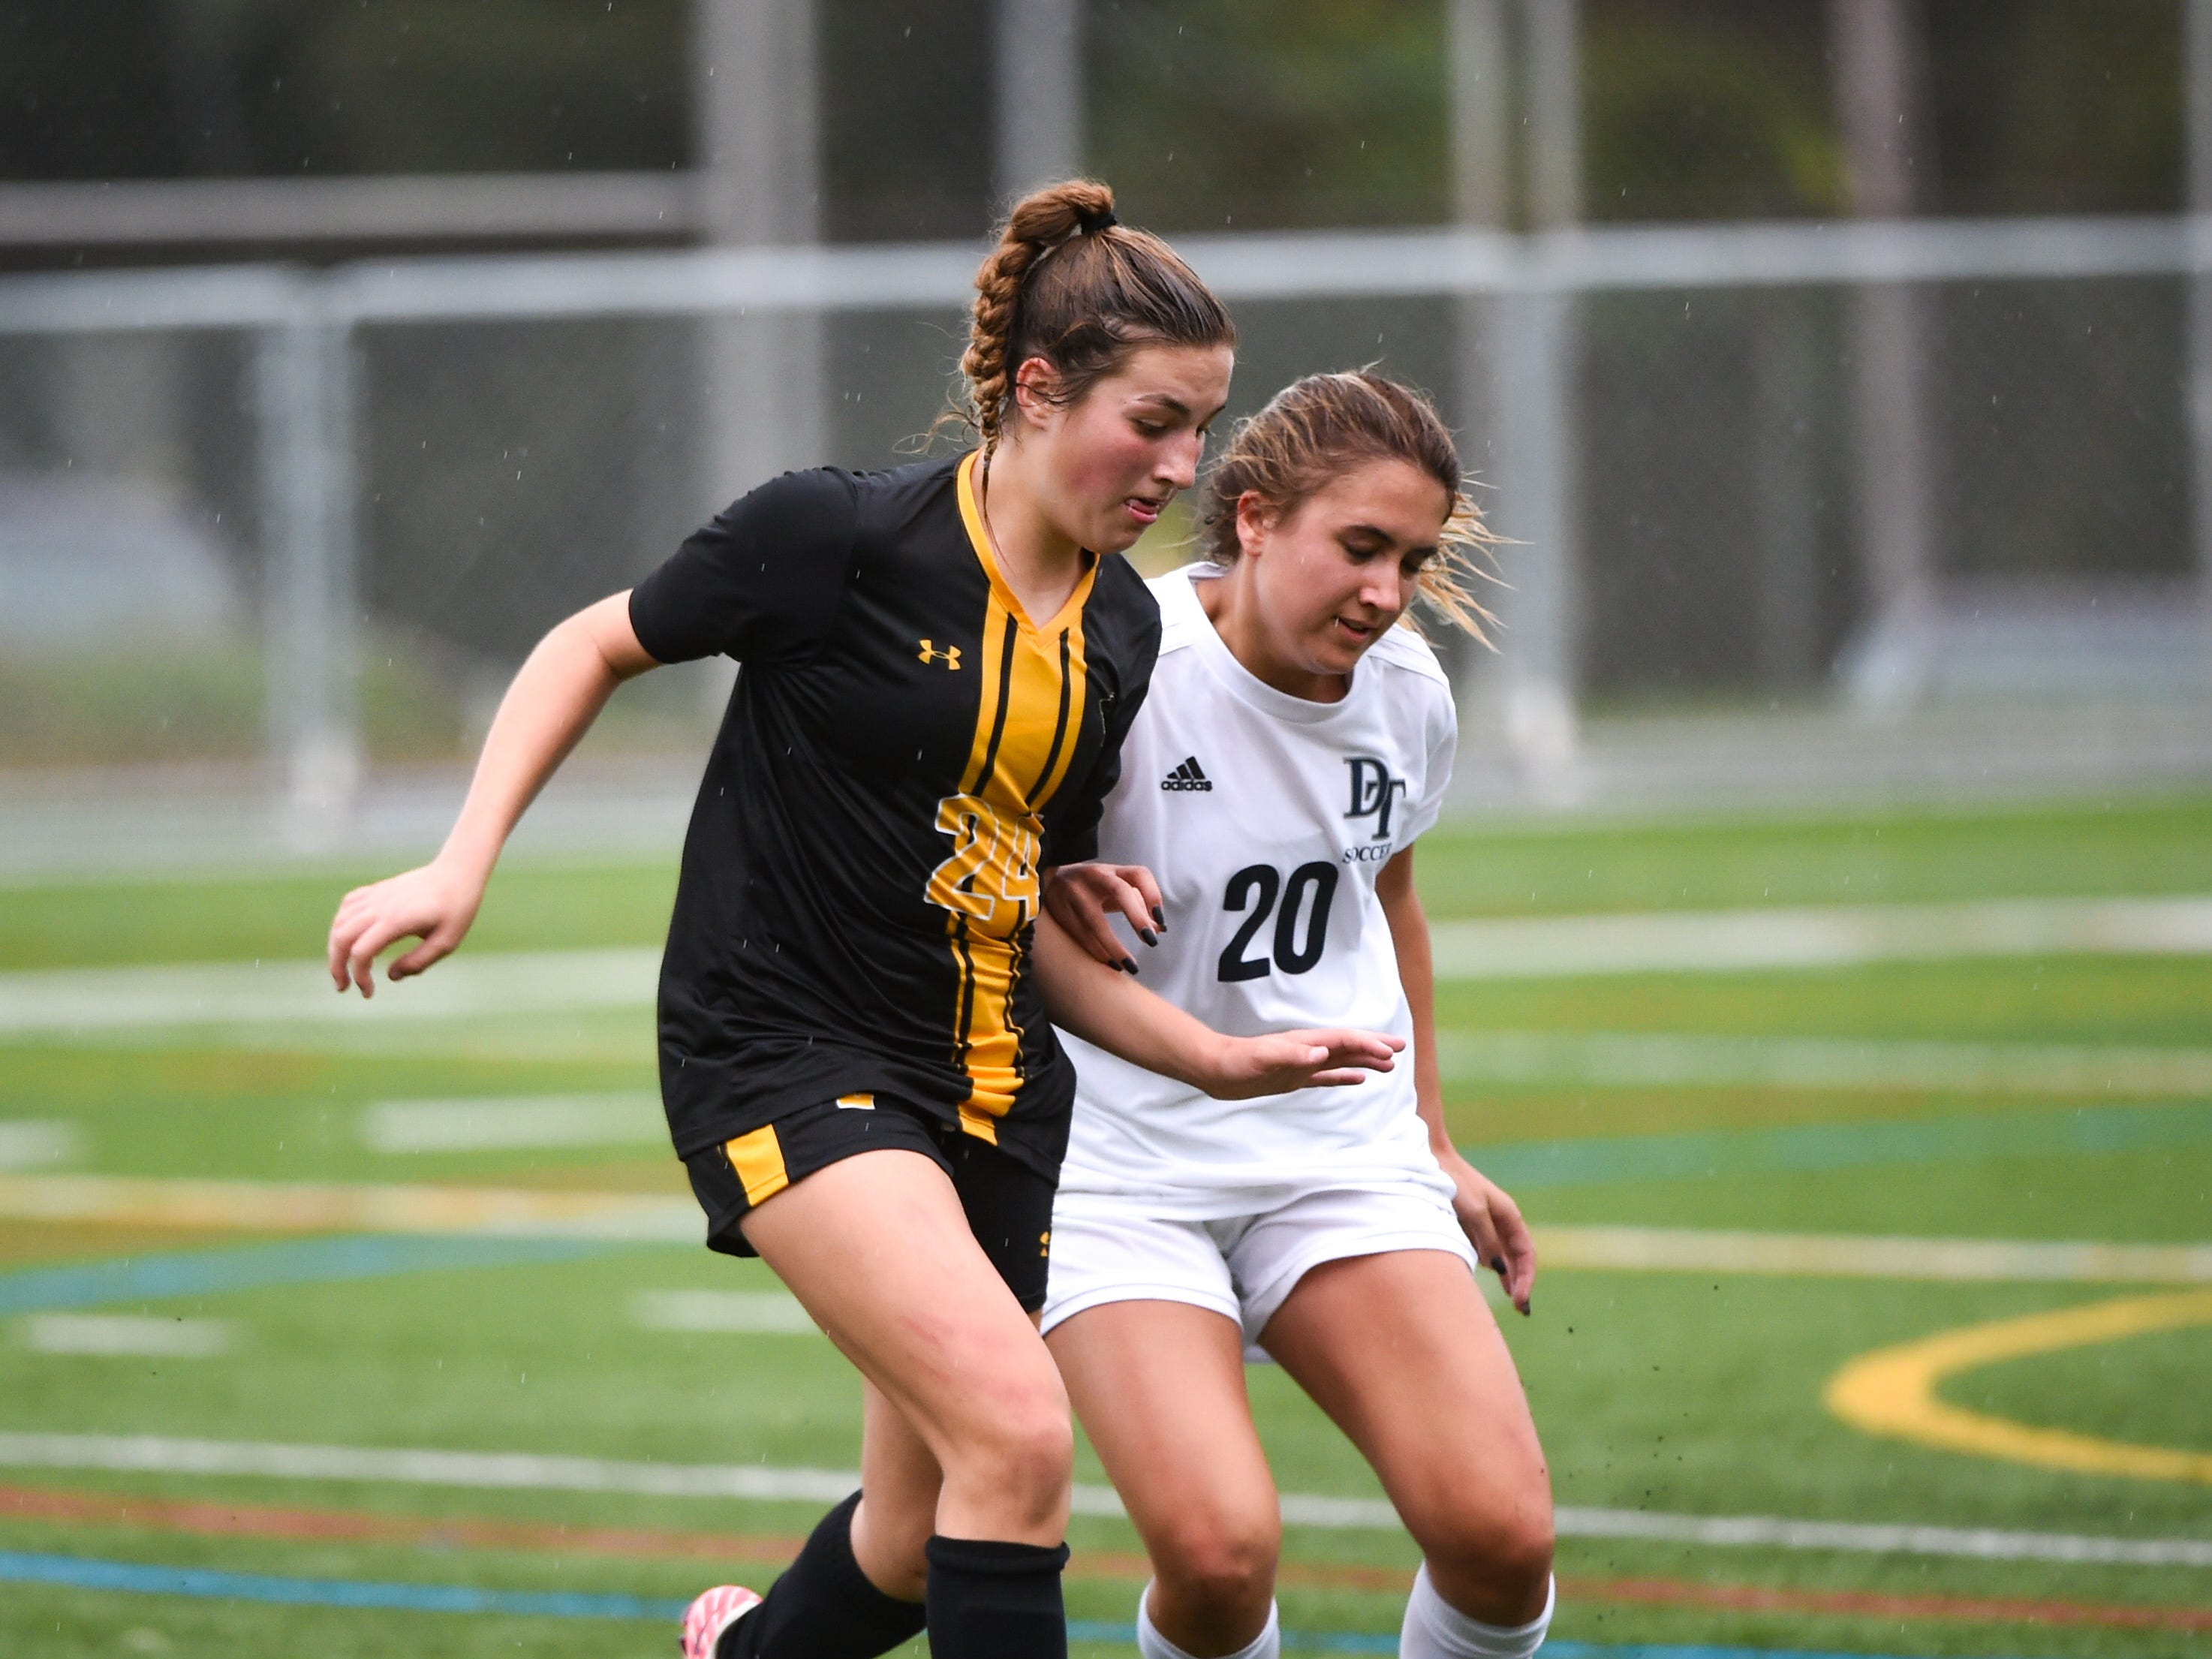 Delaney Bittner (24), left, and Jordan Lese (20), right, fight for possession during the girls soccer game between Red Lion and Dallastown, October 11, 2018. The Lady Lions beat the Wildcats 4-0.